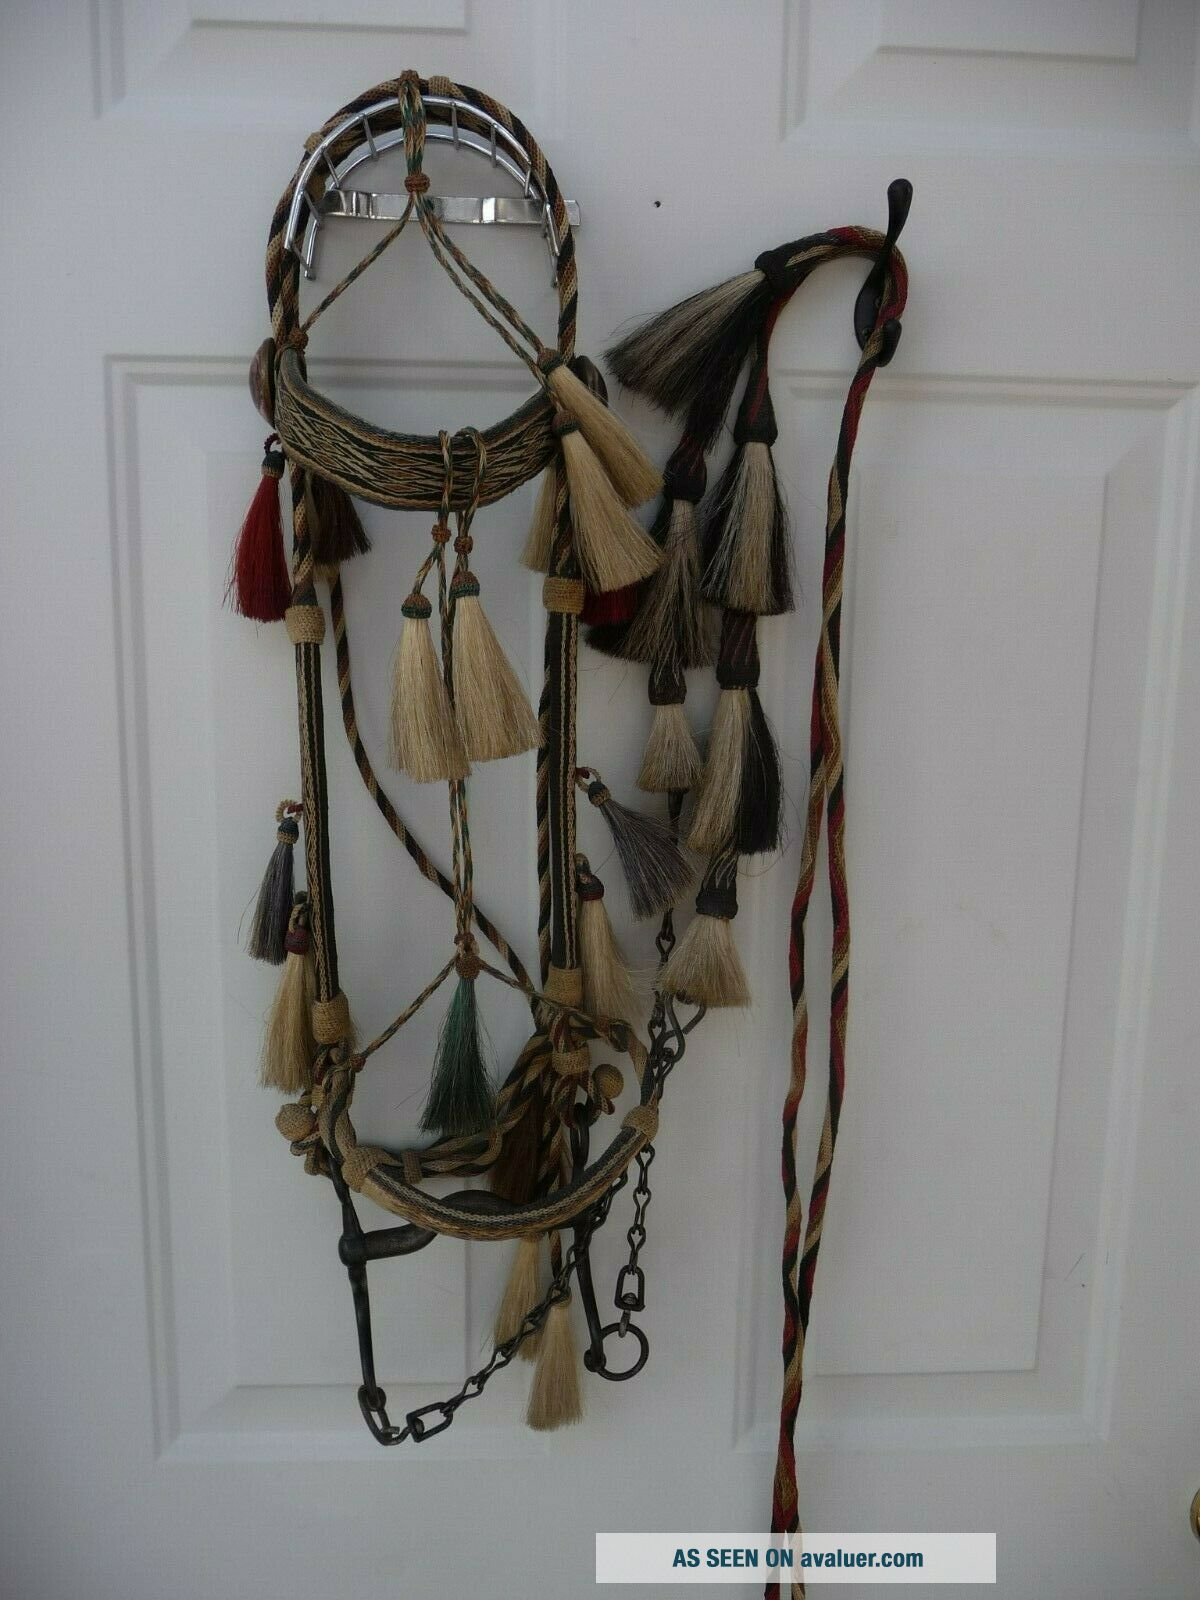 Very Rare Deerlodge Prison Montana Hitched Horse Hair Bridle C - 1880 - 1920